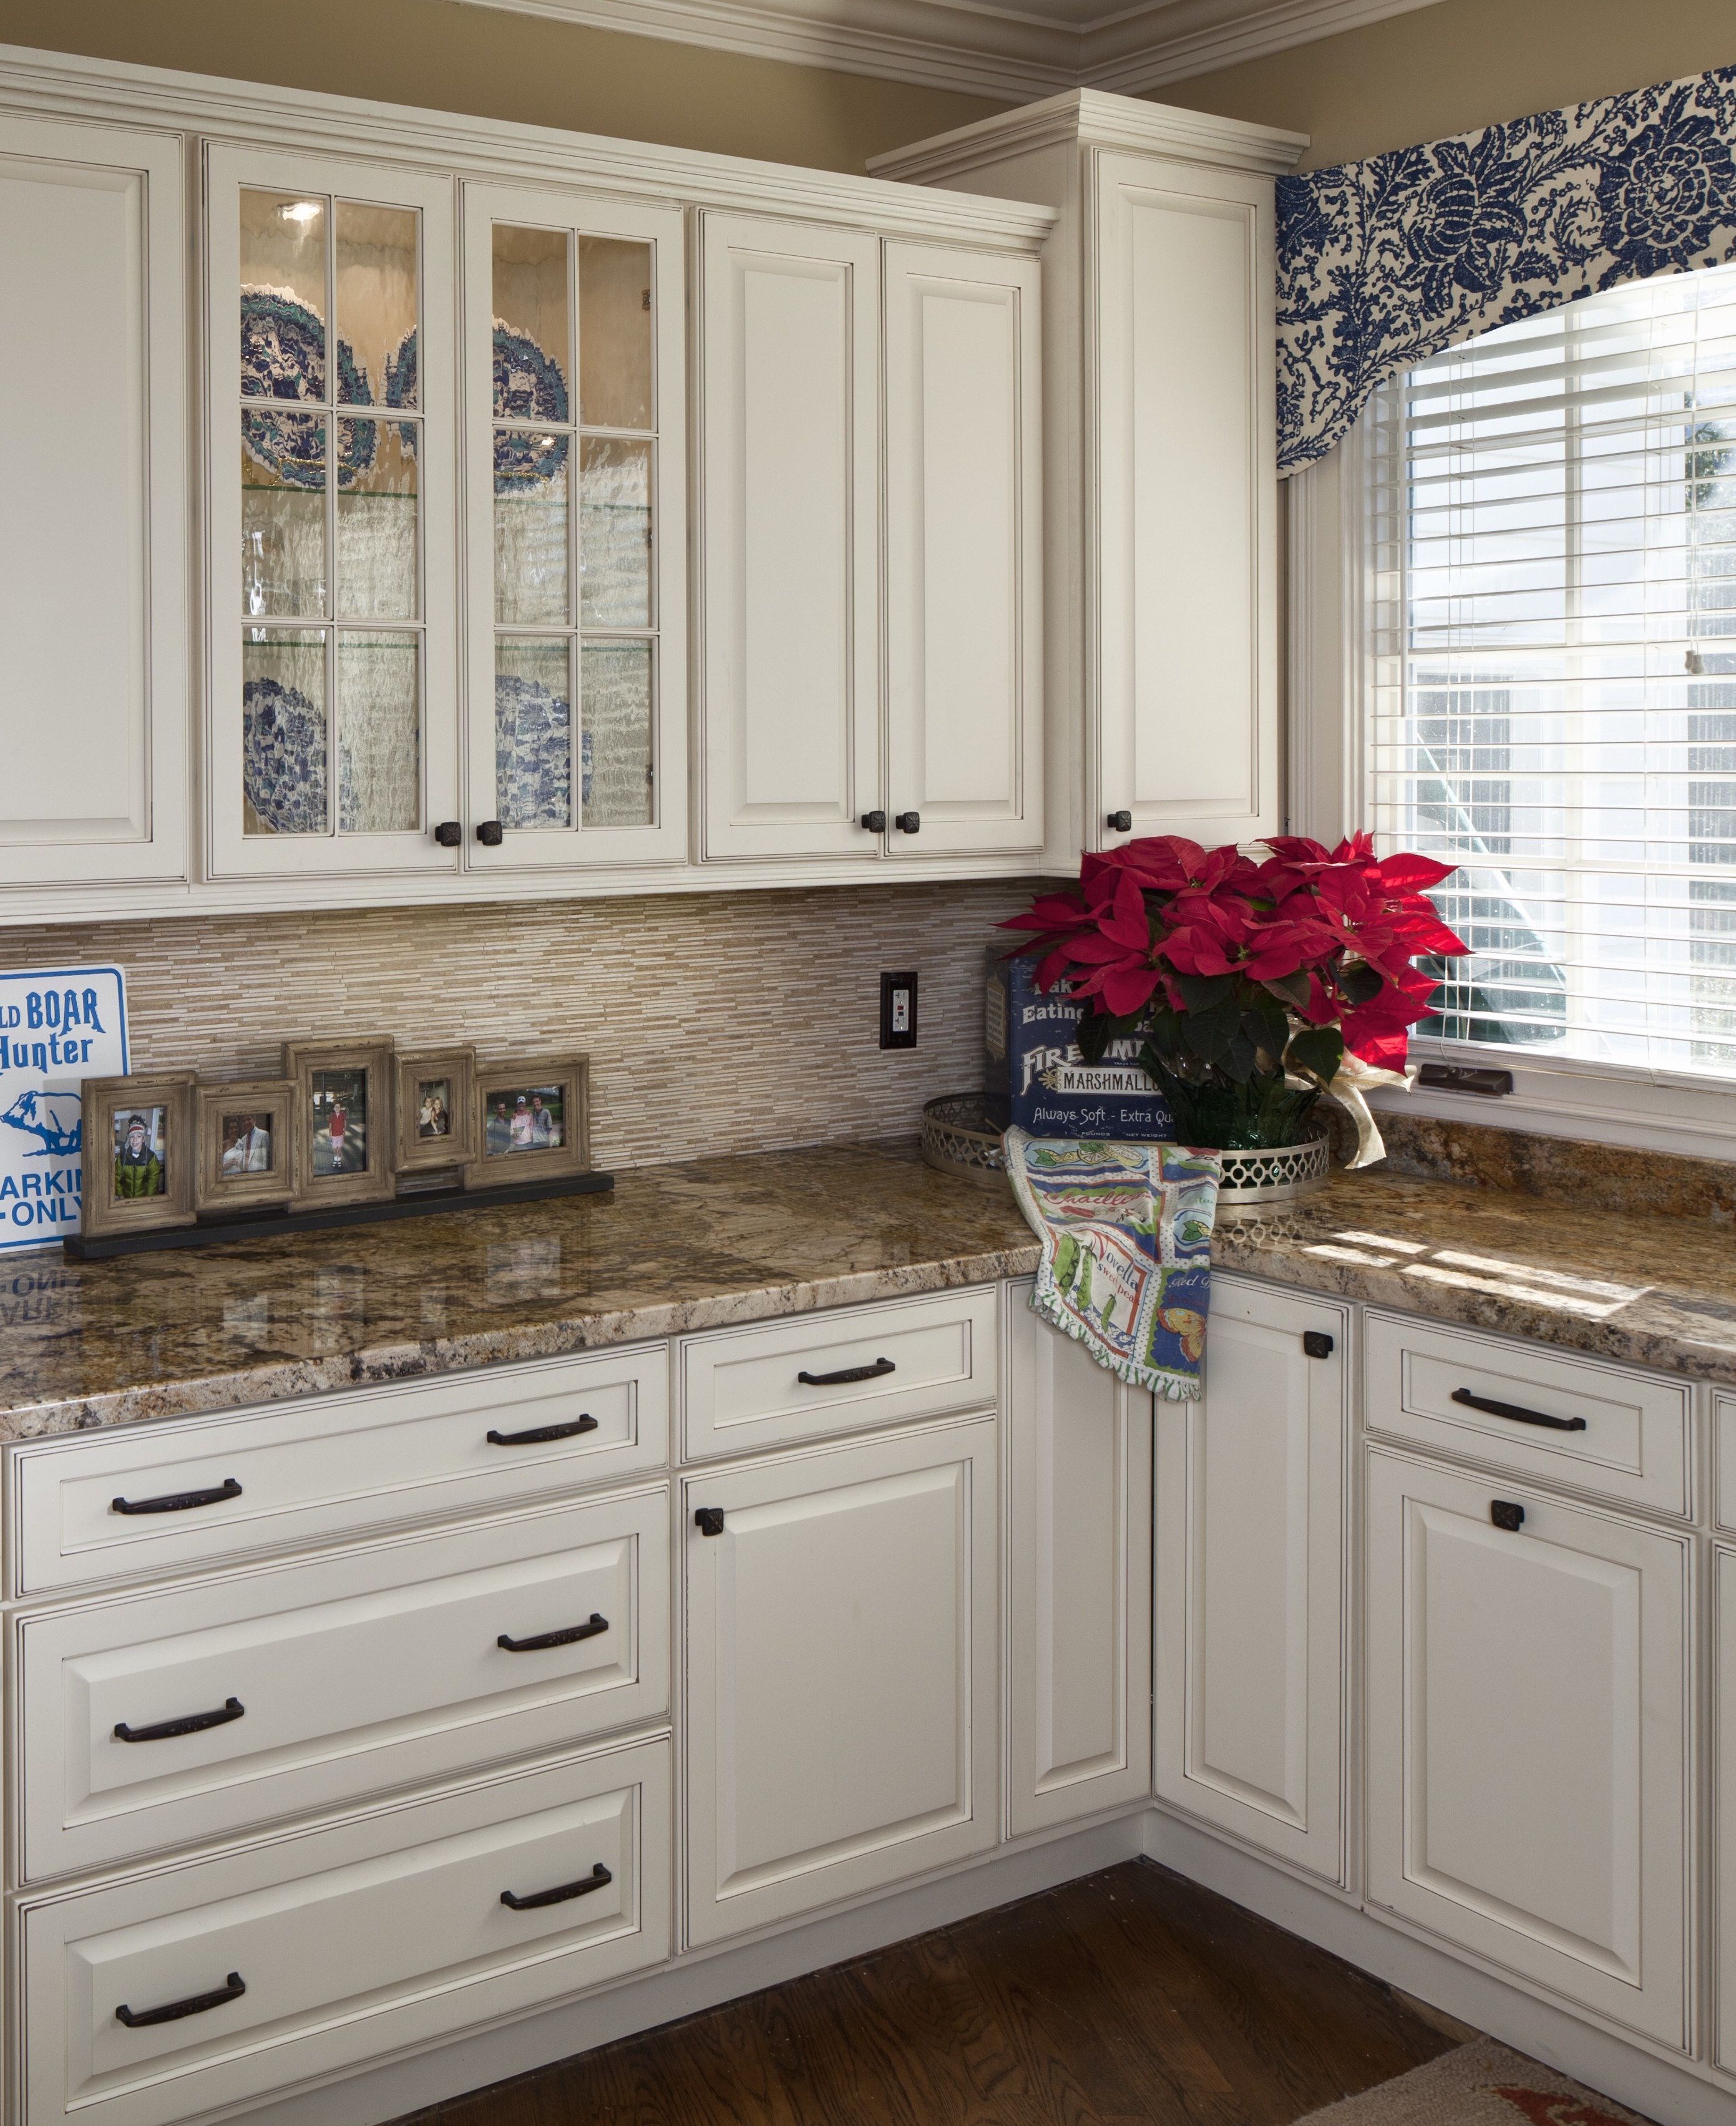 Download Wallpaper Images Of White Kitchen Cabinets With Bronze Hardware